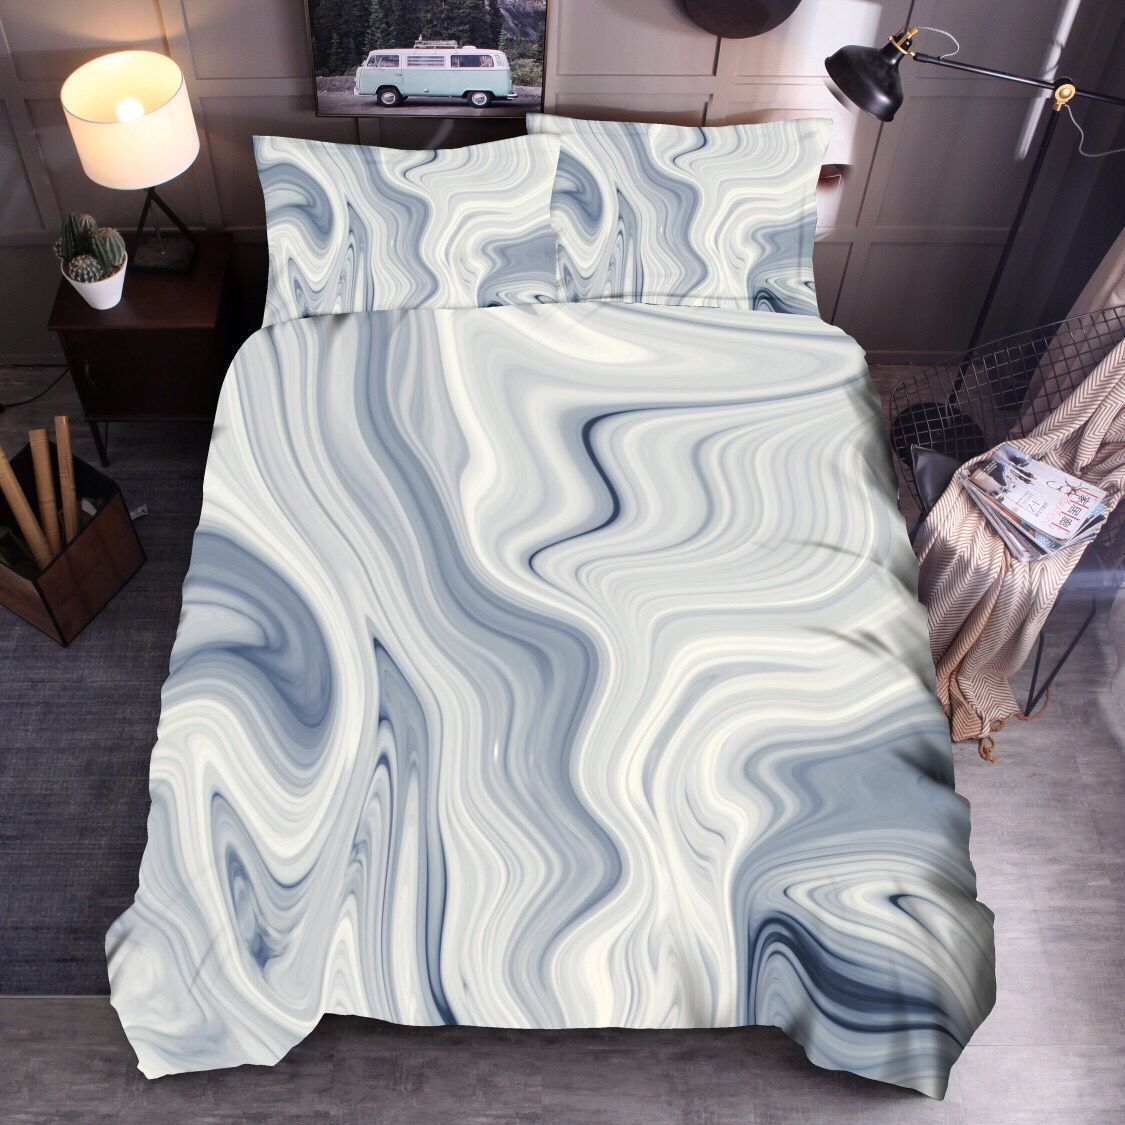 New Style  Hot Sales Bedding Article Color Marbling Quilt Cover Pillow Case Non-Bed Linen Sets